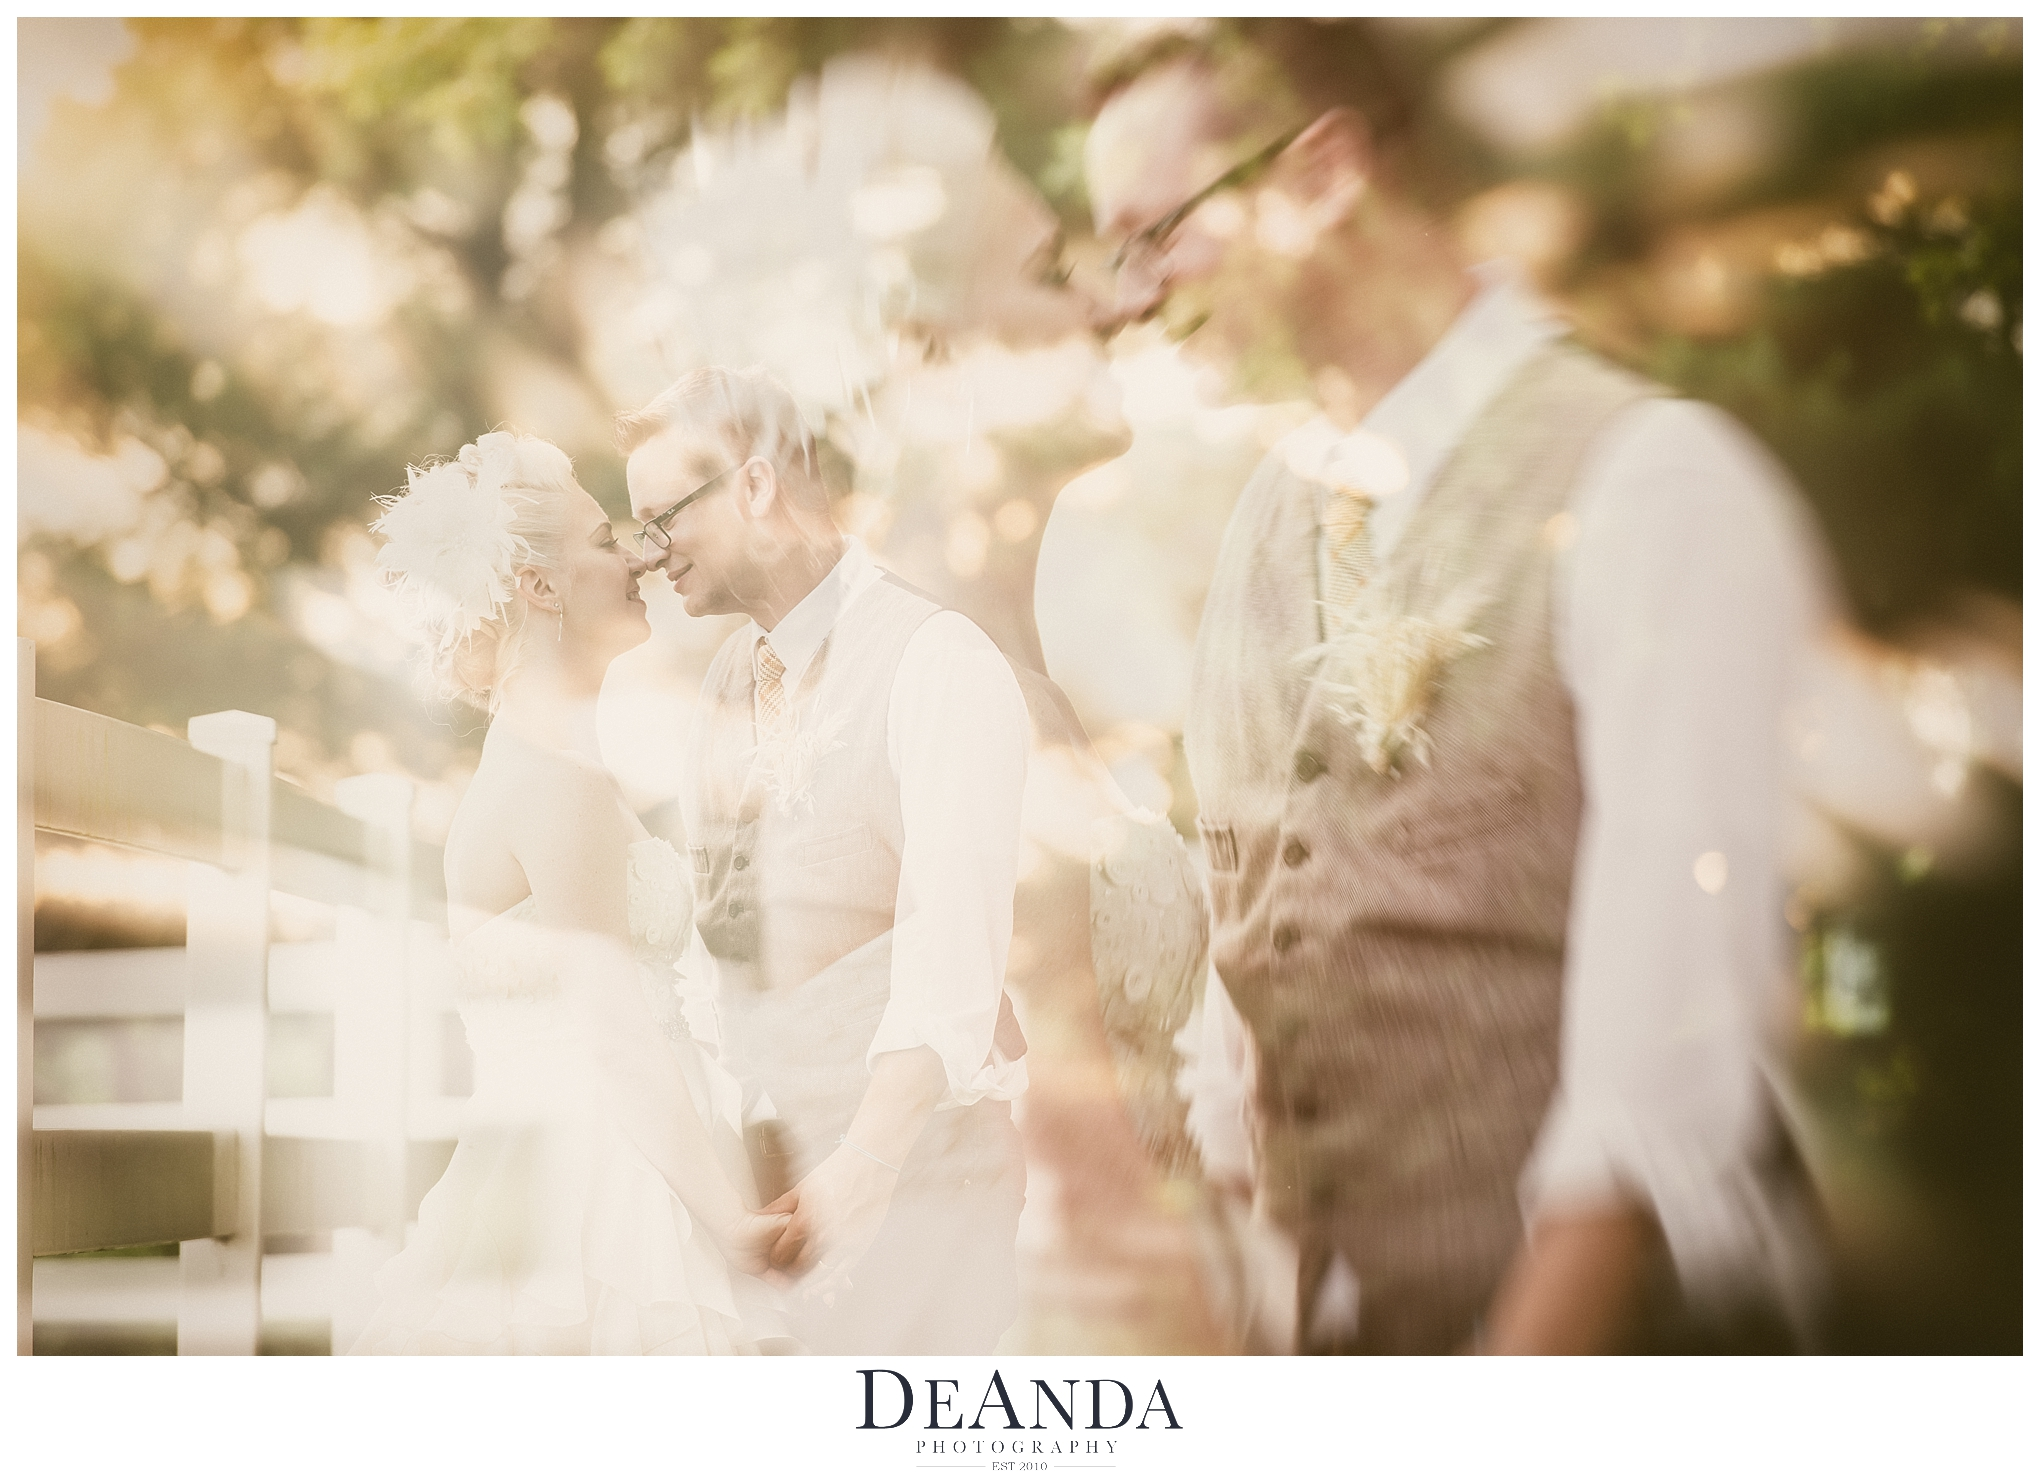 Double Exposure Image of bride and groom